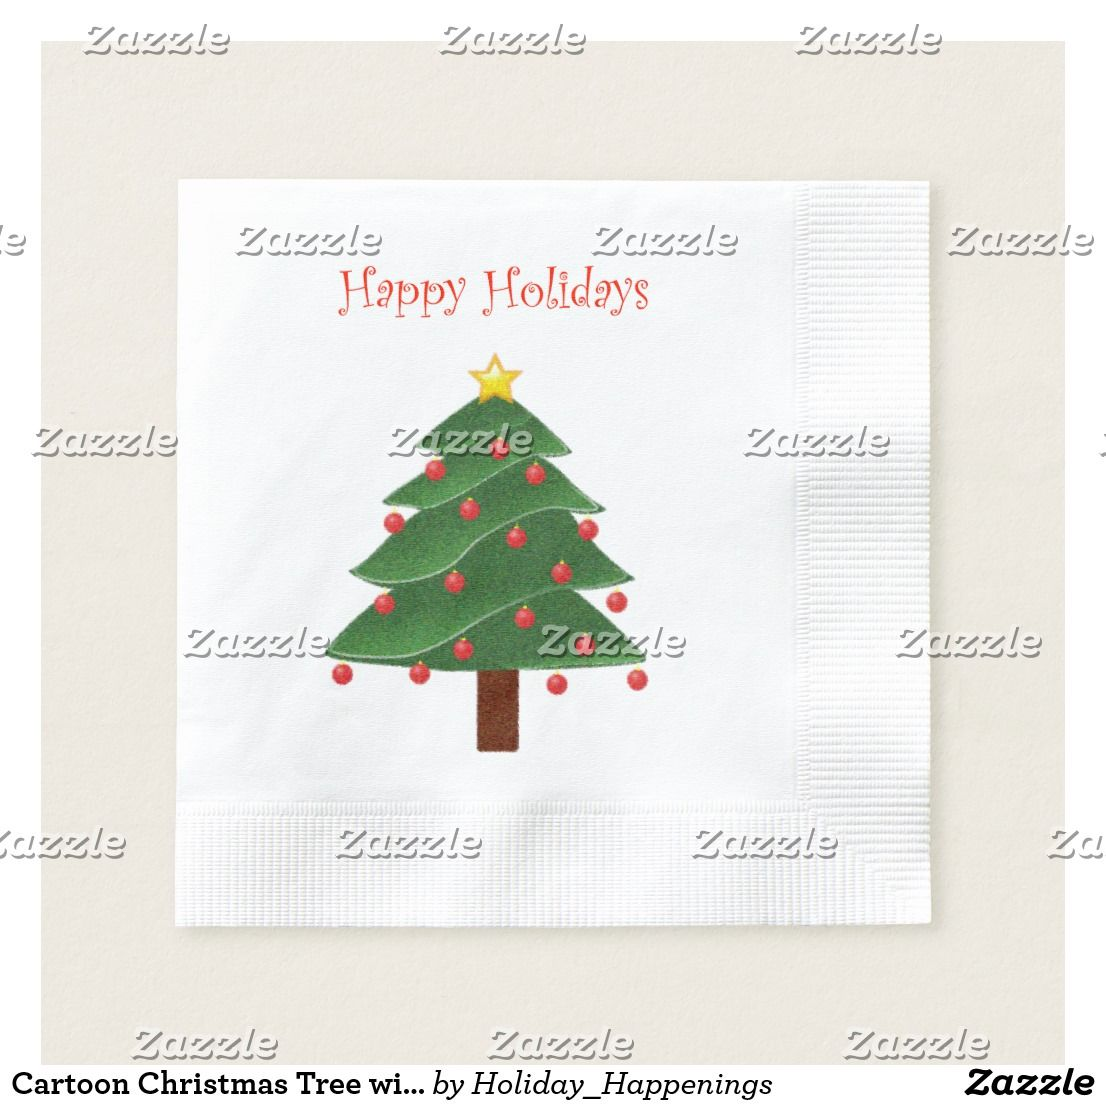 Cartoon Christmas Tree With Ornaments Drawing Paper Napkins Zazzle Com Cartoon Christmas Tree Ornament Drawing Red Ornaments